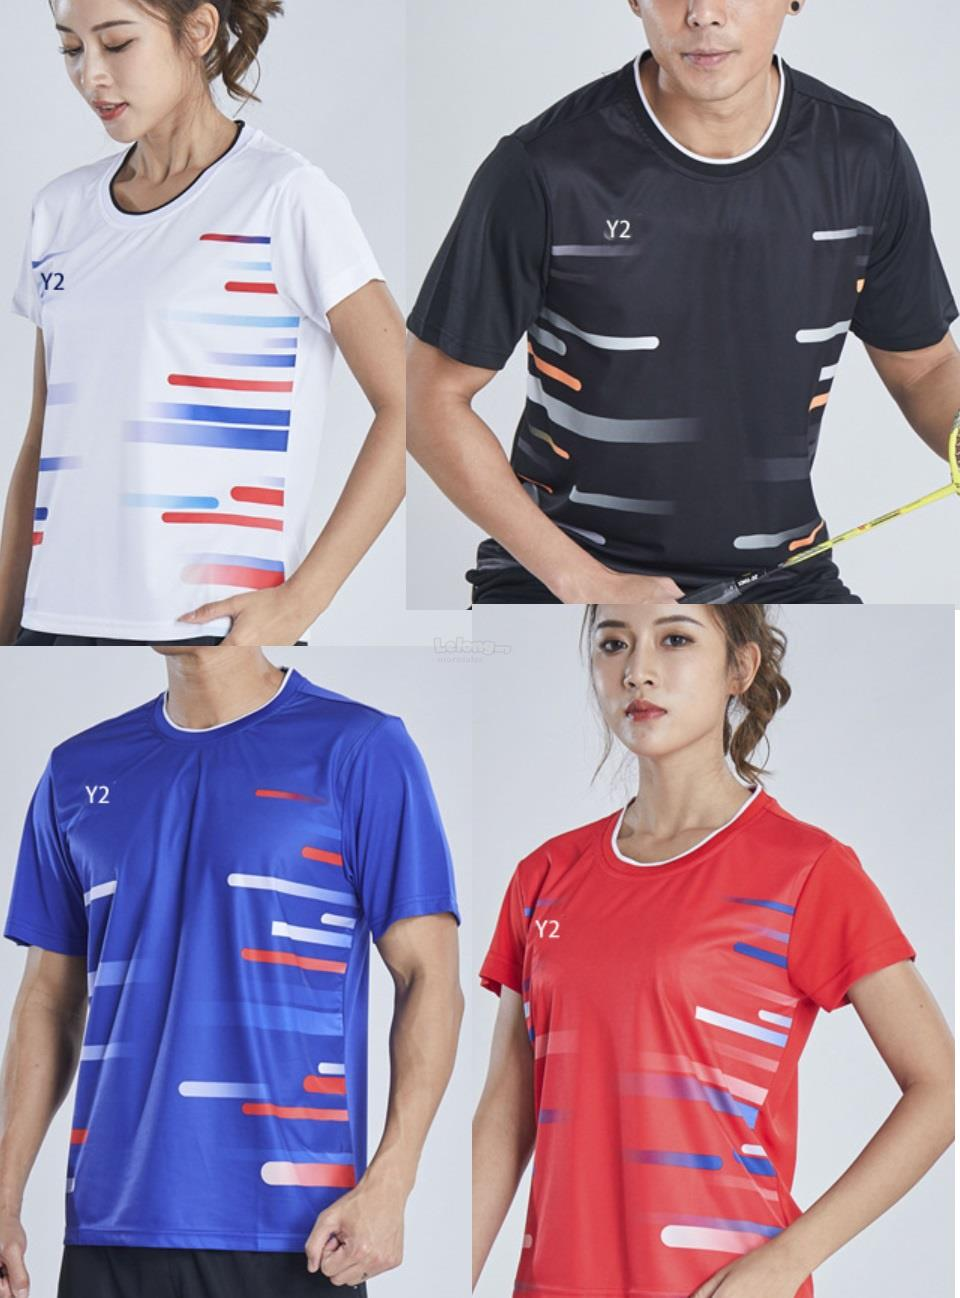 2019 Mens Women badminton racket table tennis sports jersey shirt#Y179